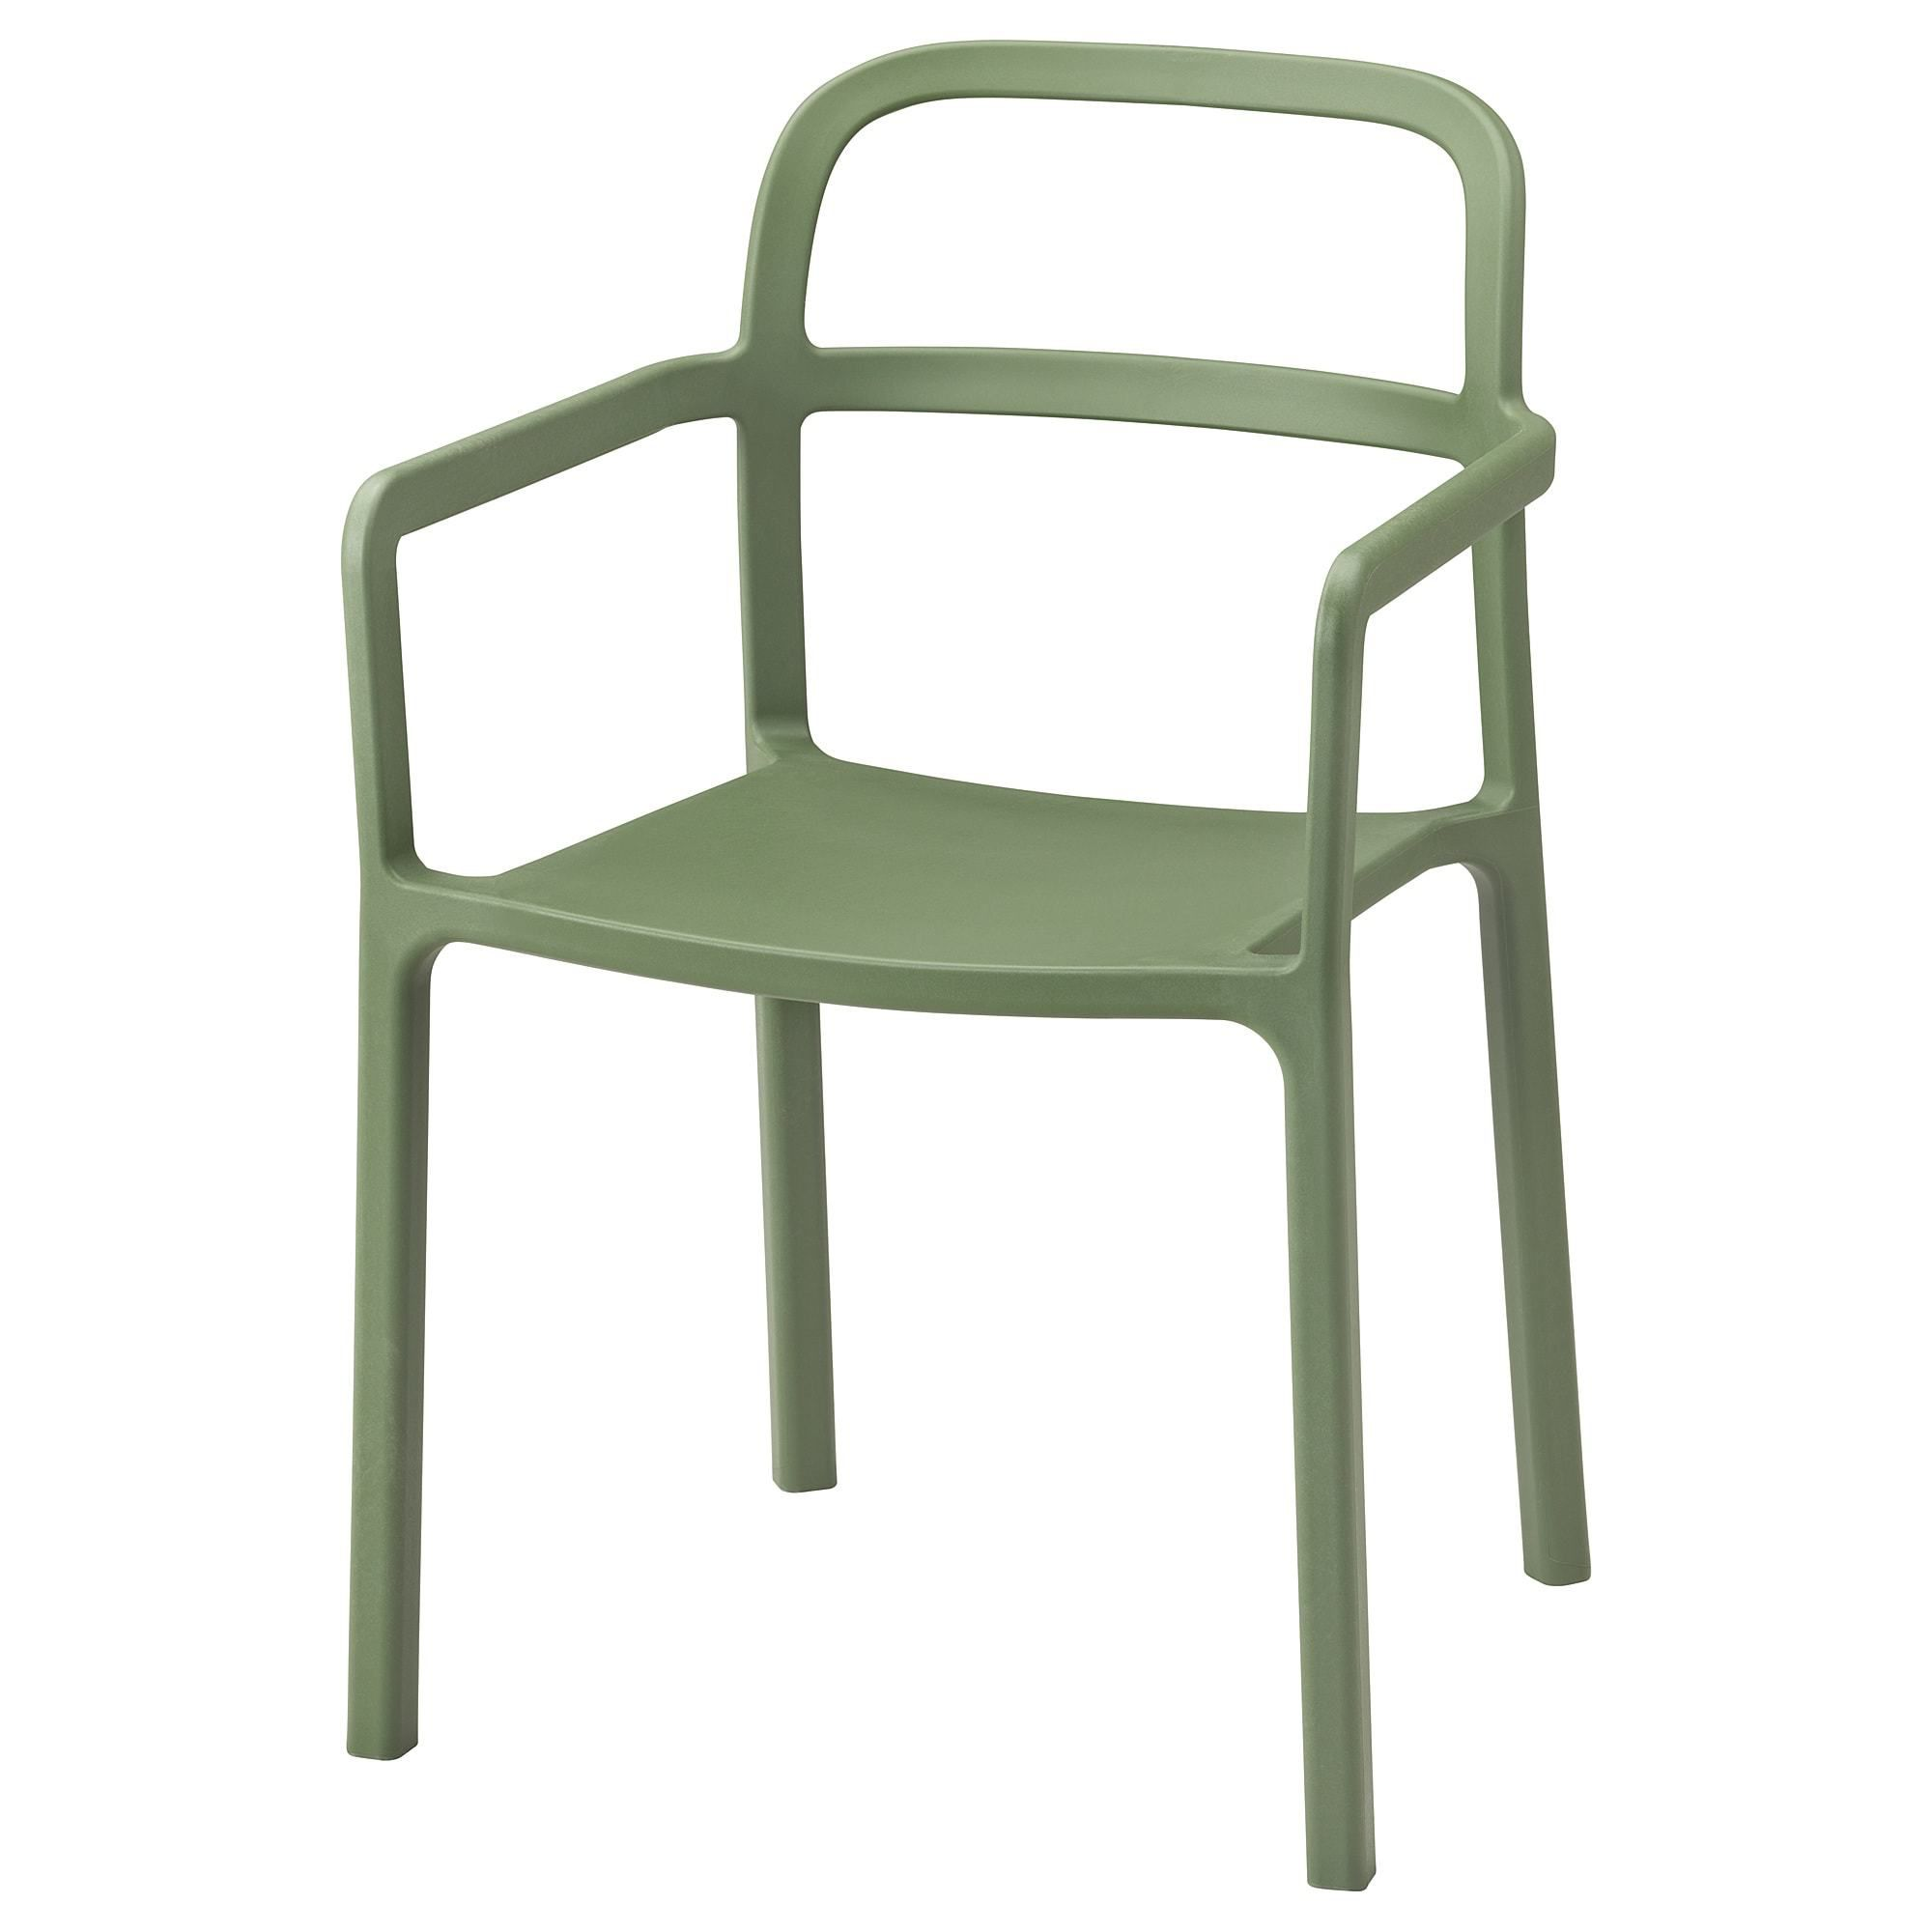 Ikea Green Chair—Ikea Shipping